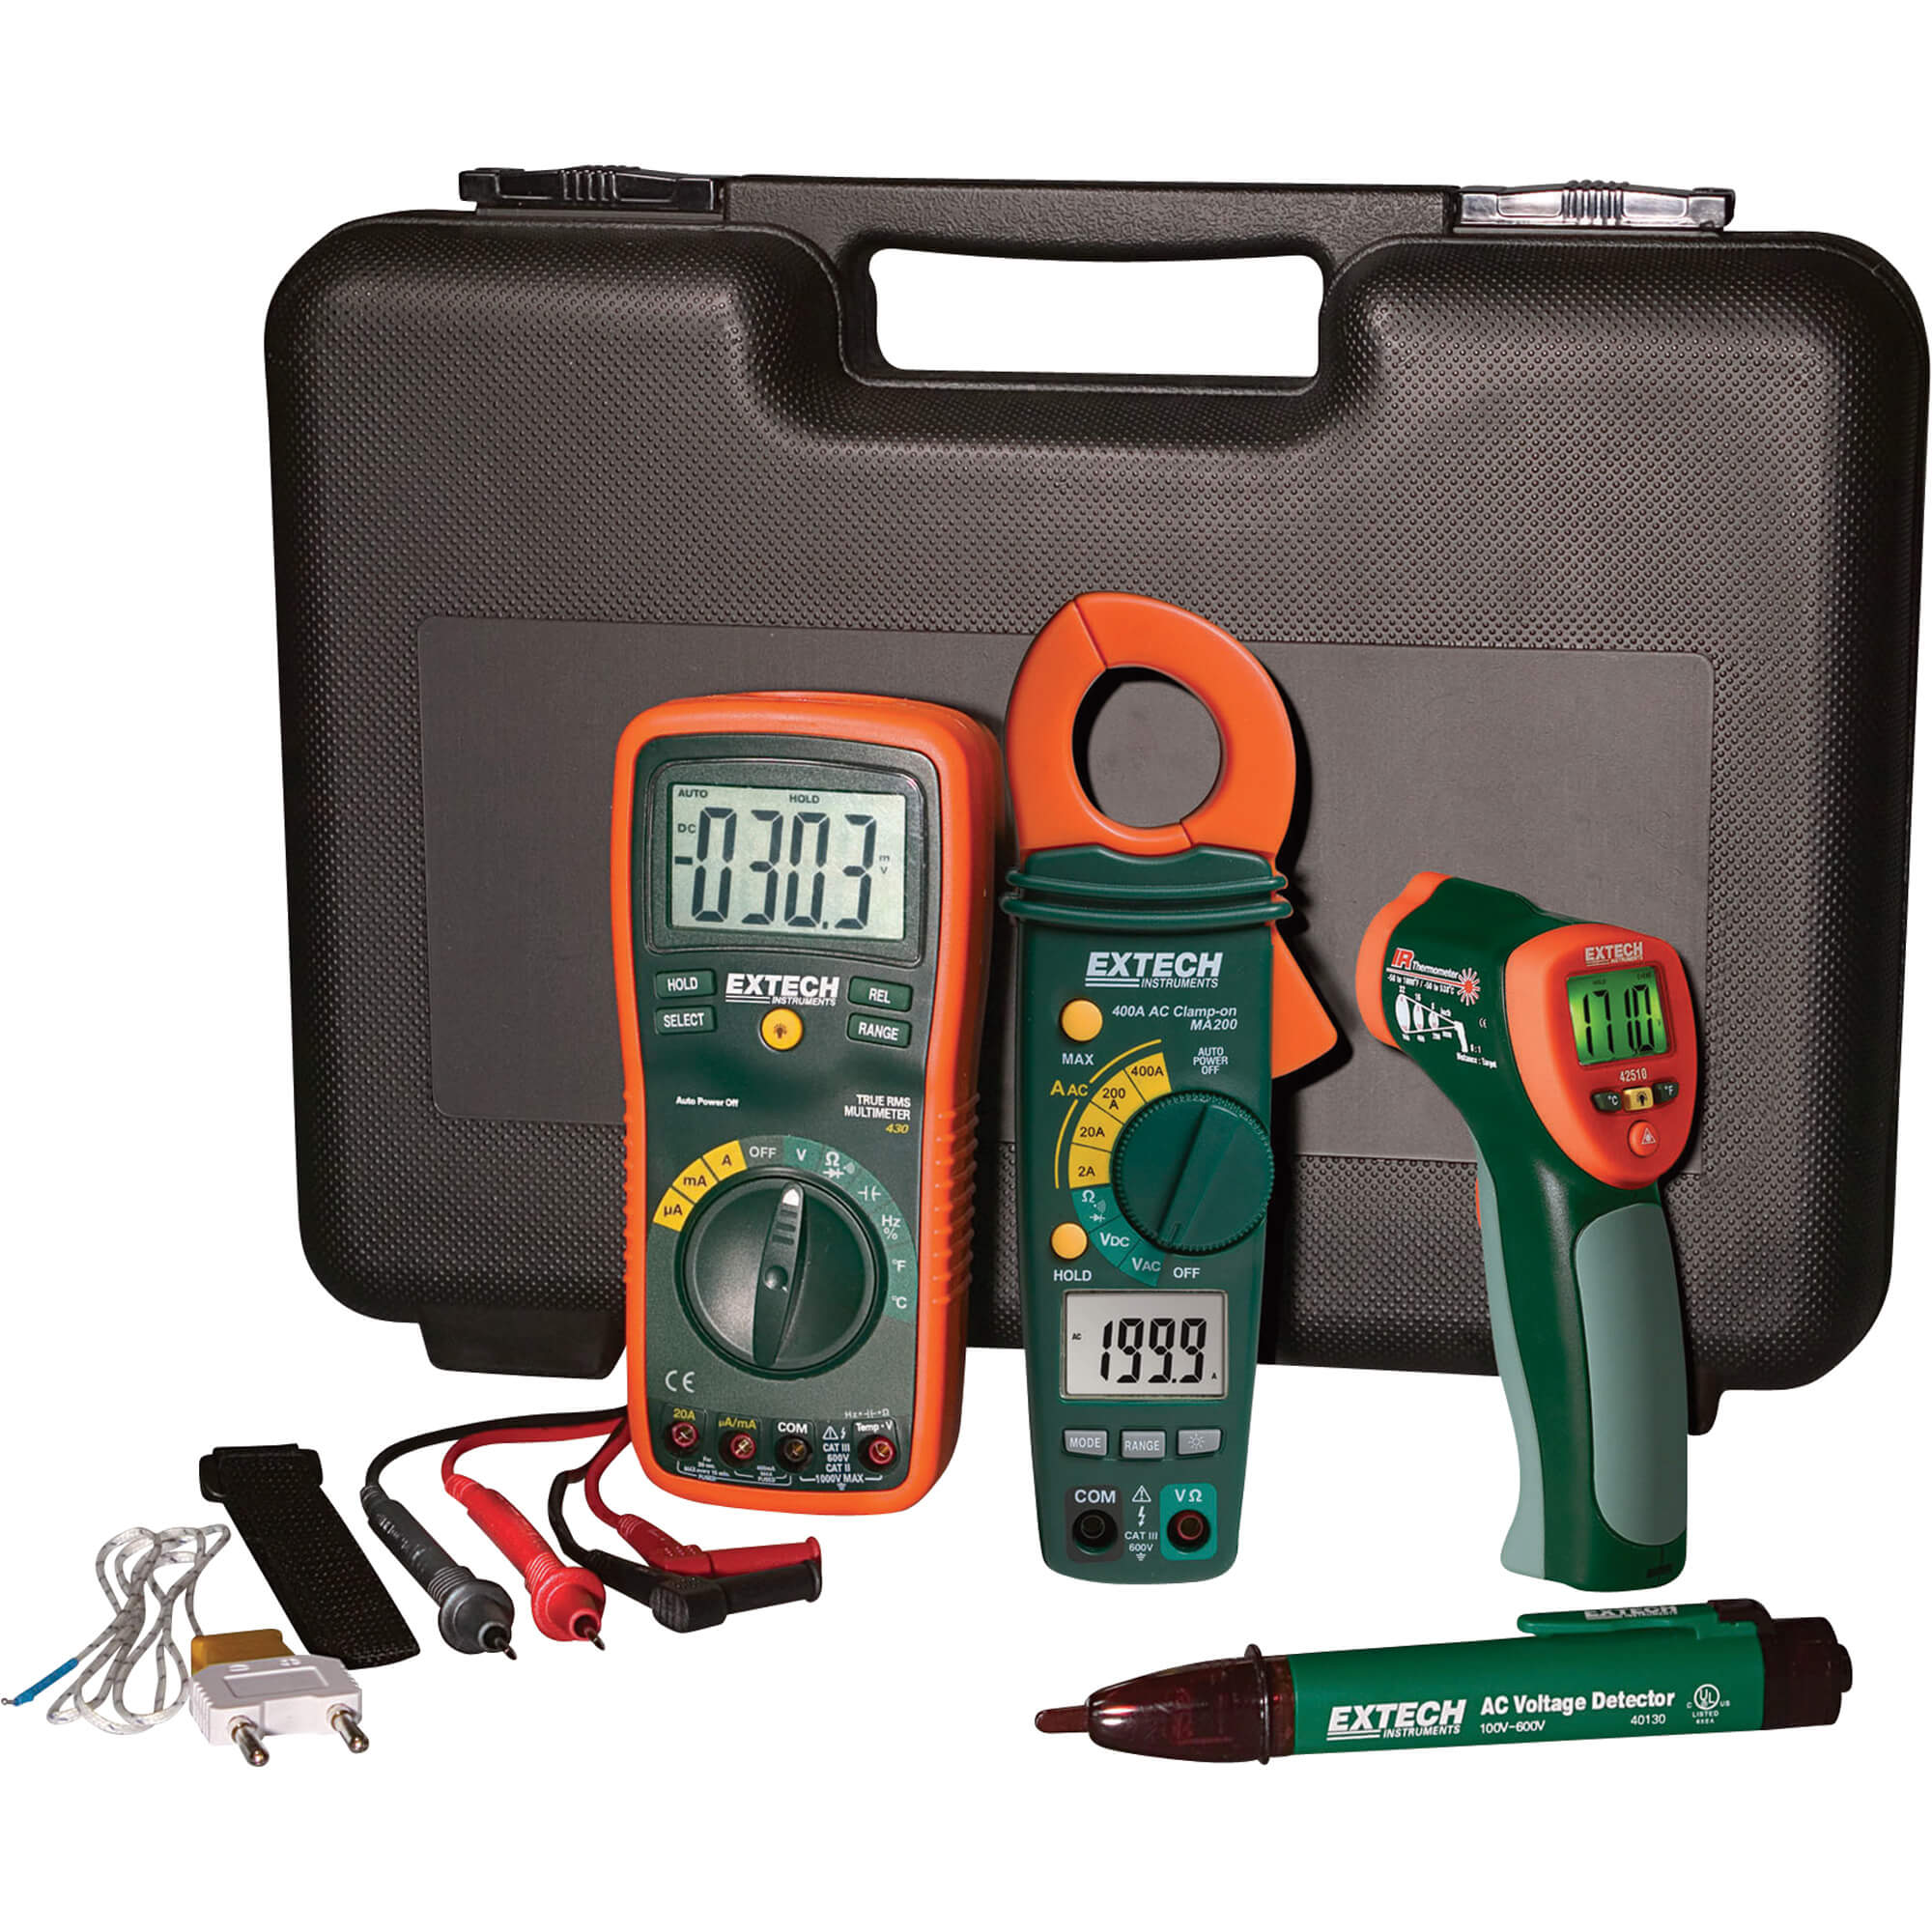 Extech TK430-IR Troubleshooting Test Kit for Electrical Applications